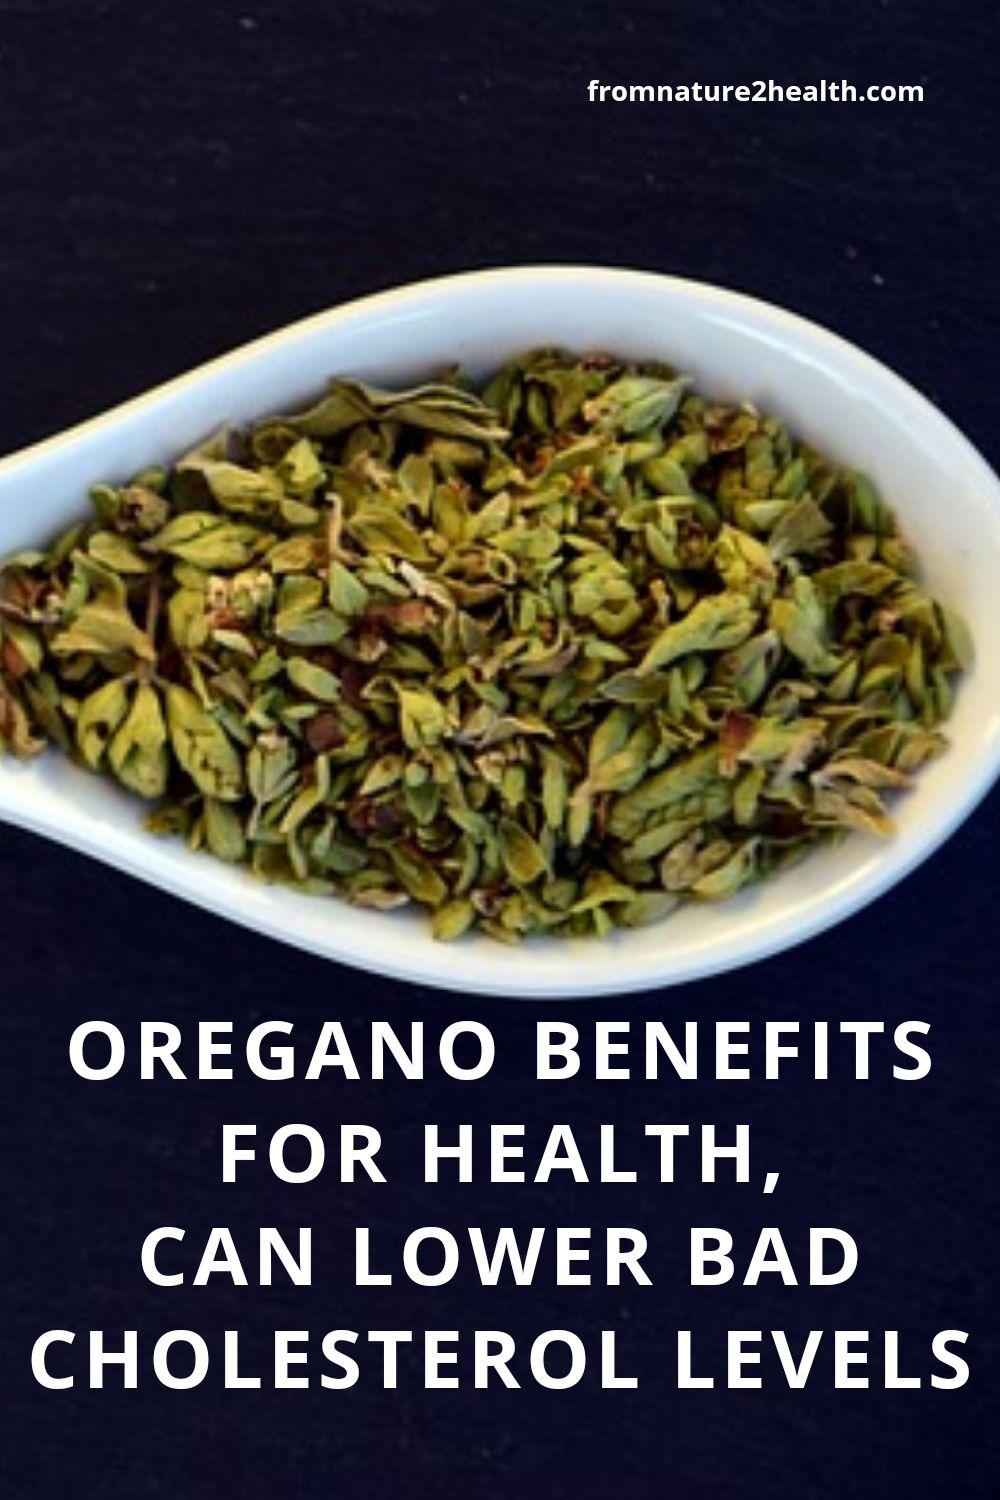 Oregano Benefits For Health, Can Lower Bad Cholesterol Levels